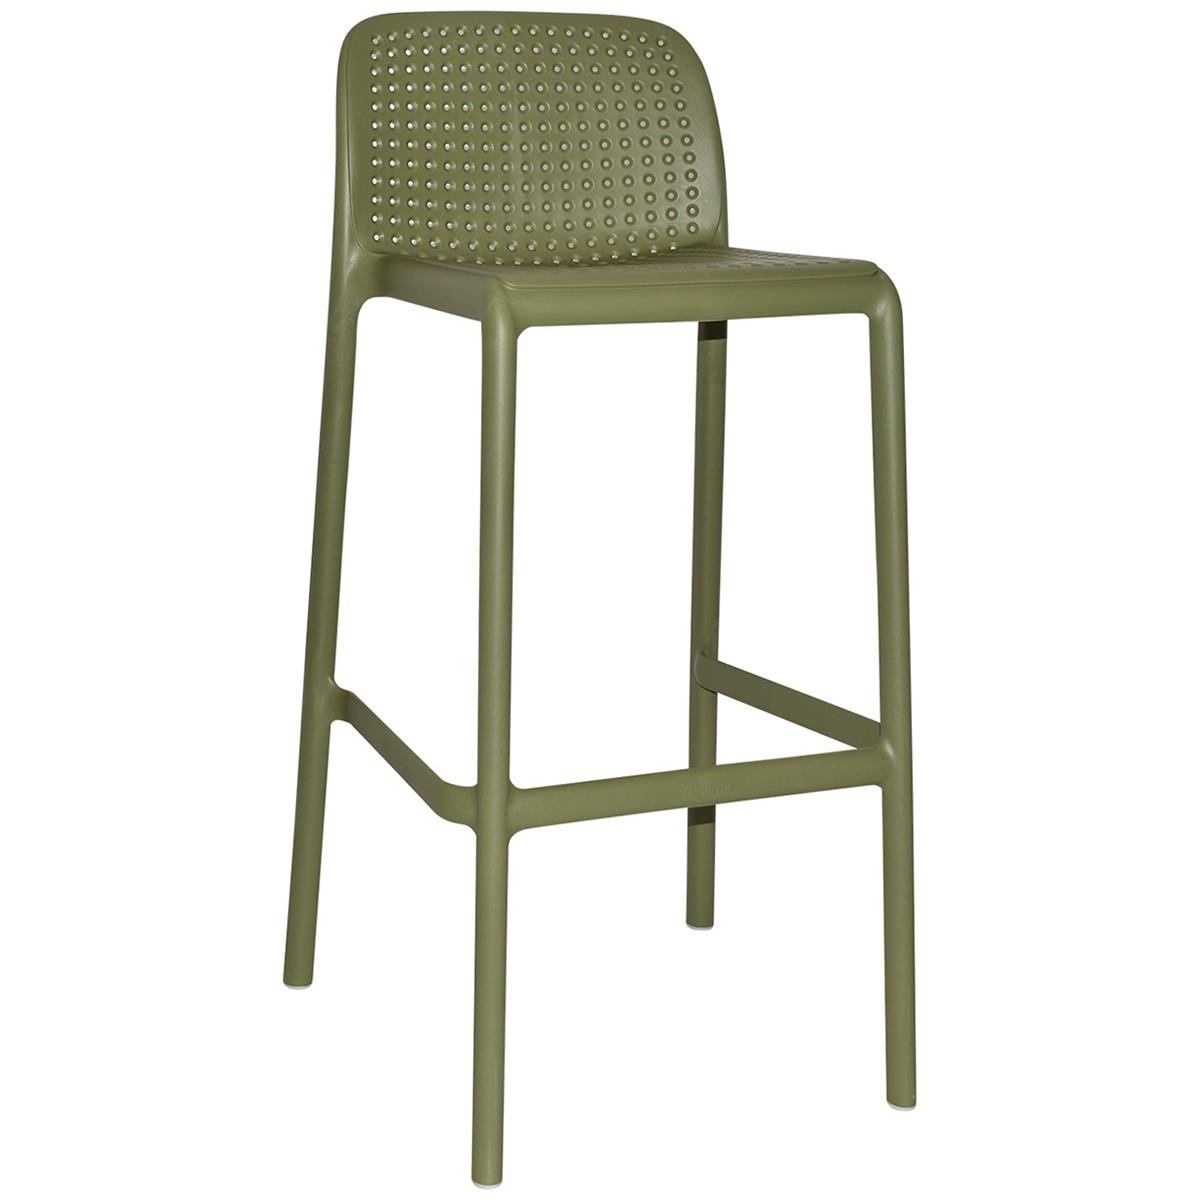 Bora Italian Made Commercial Grade Stackable Indoor / Outdoor Bar Stool , Avage